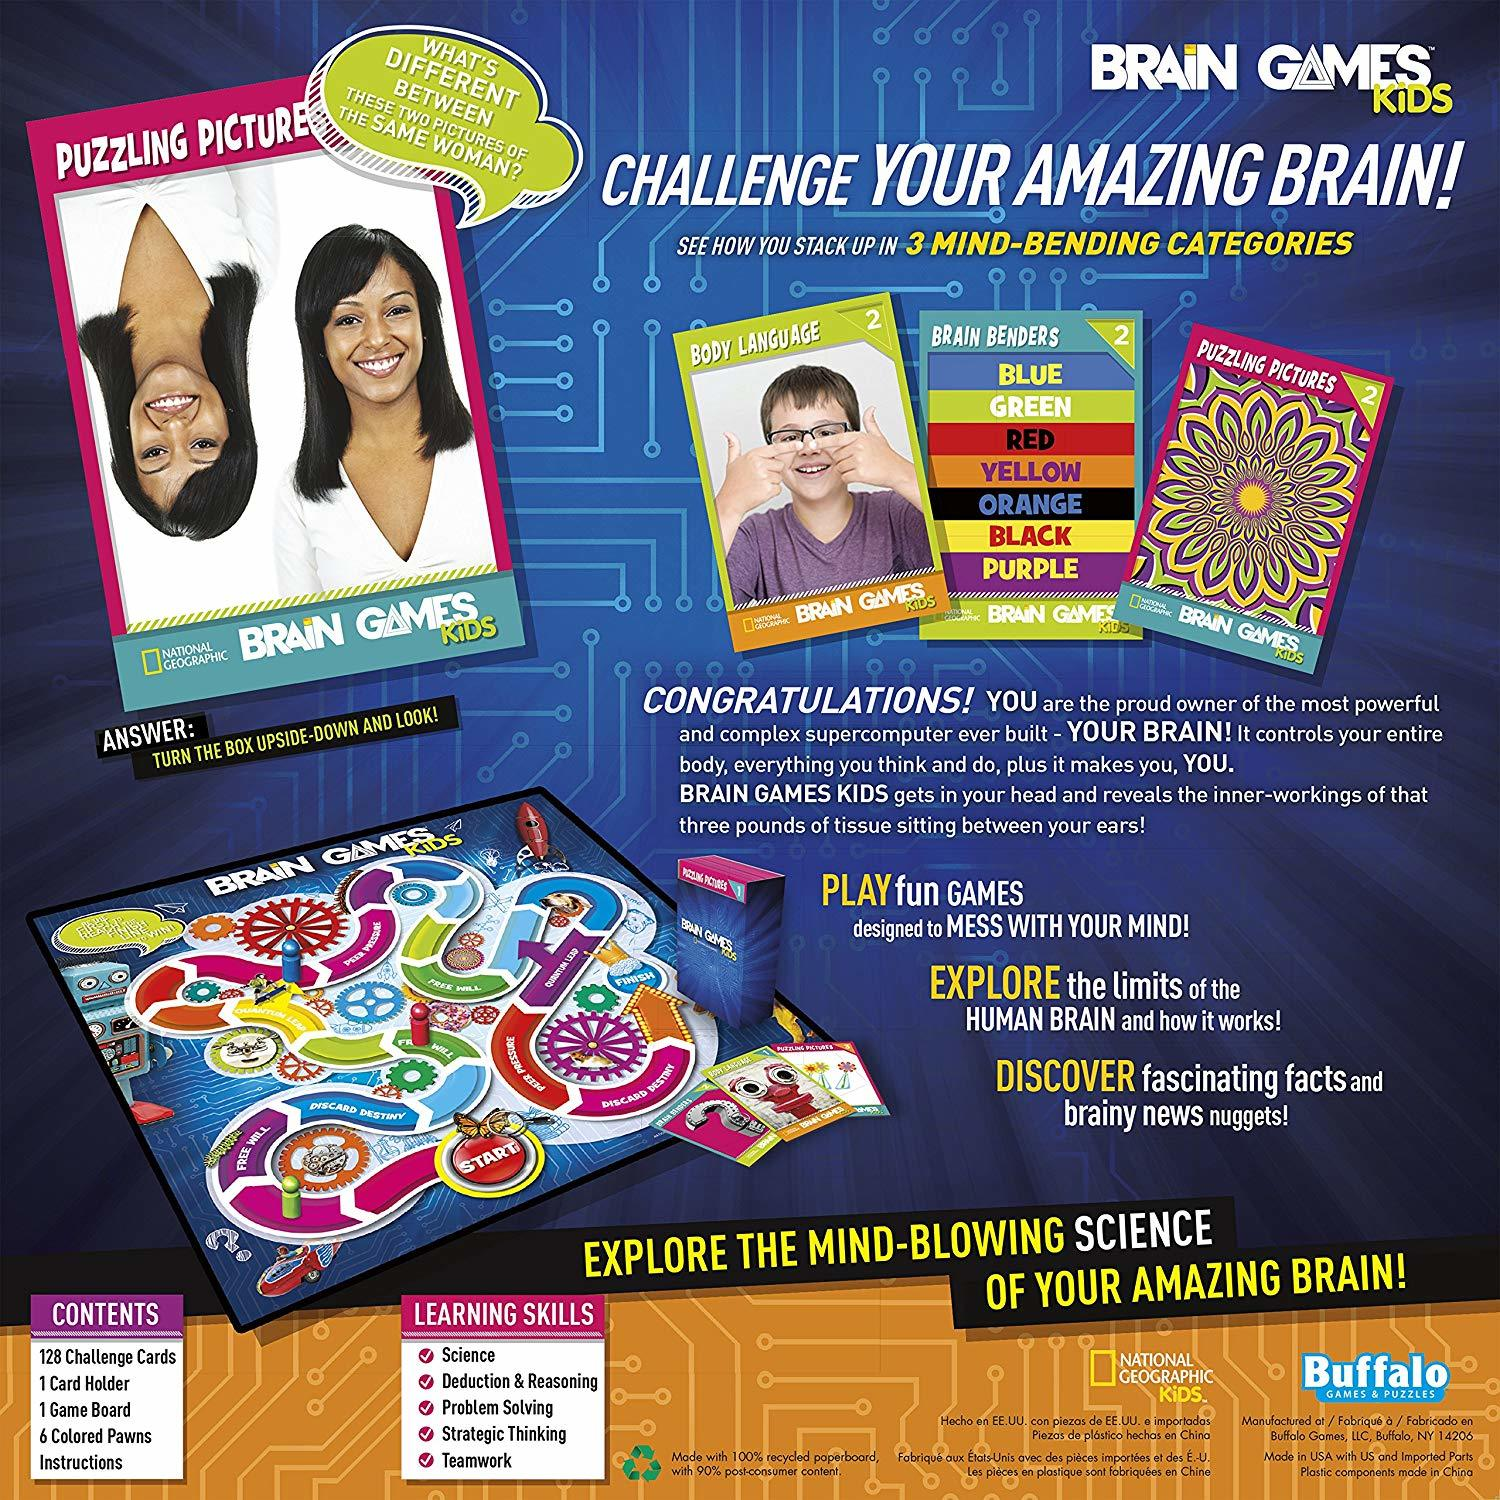 National Geographic - Brain Games Kids image